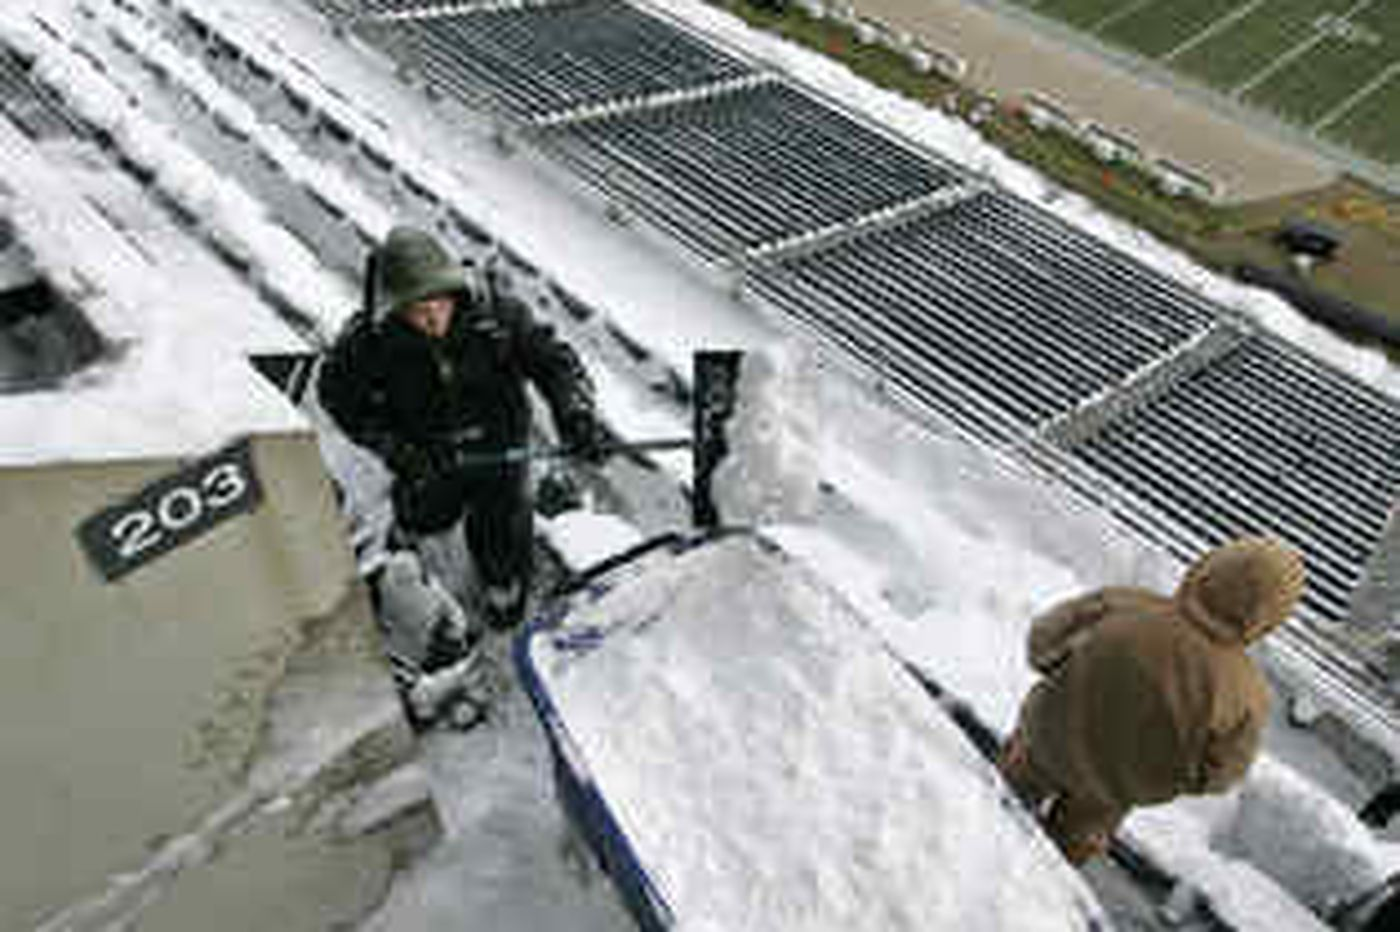 Before Eagles game, cleanup team took the field